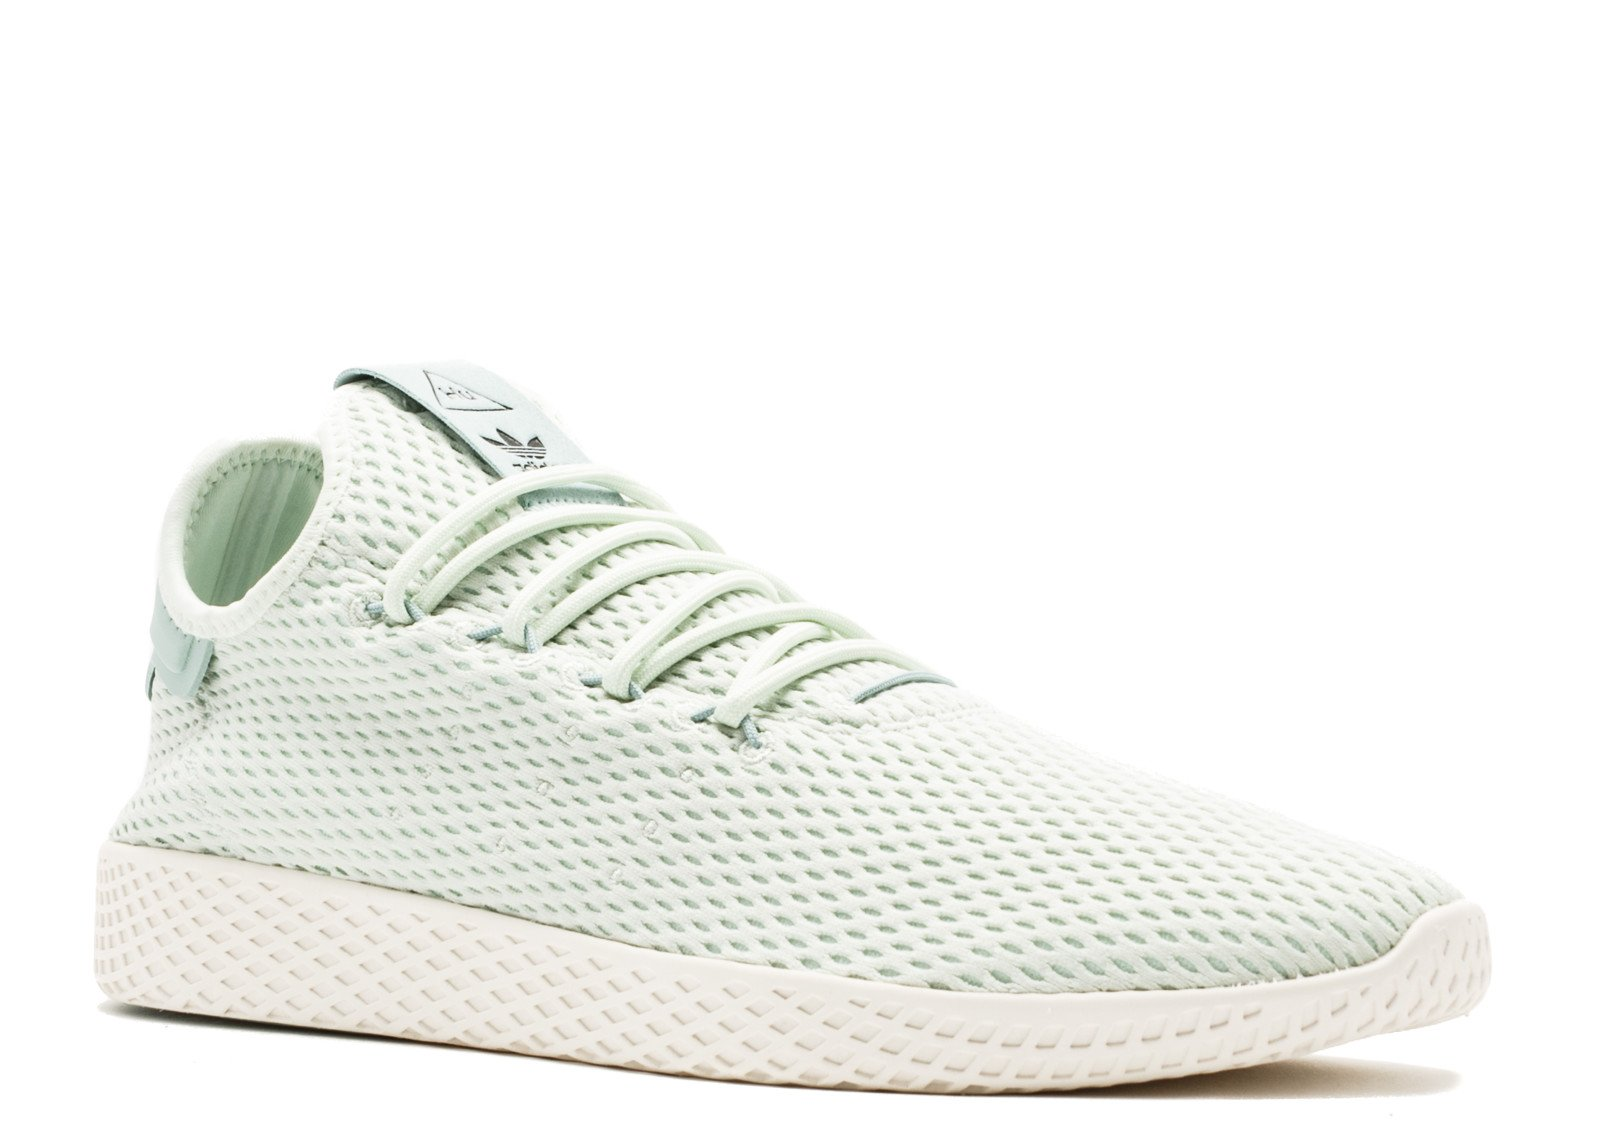 448ce46af50b5 Galleon - Adidas Men s Pw Tennis Hu Sneaker (11.5 D(M) US